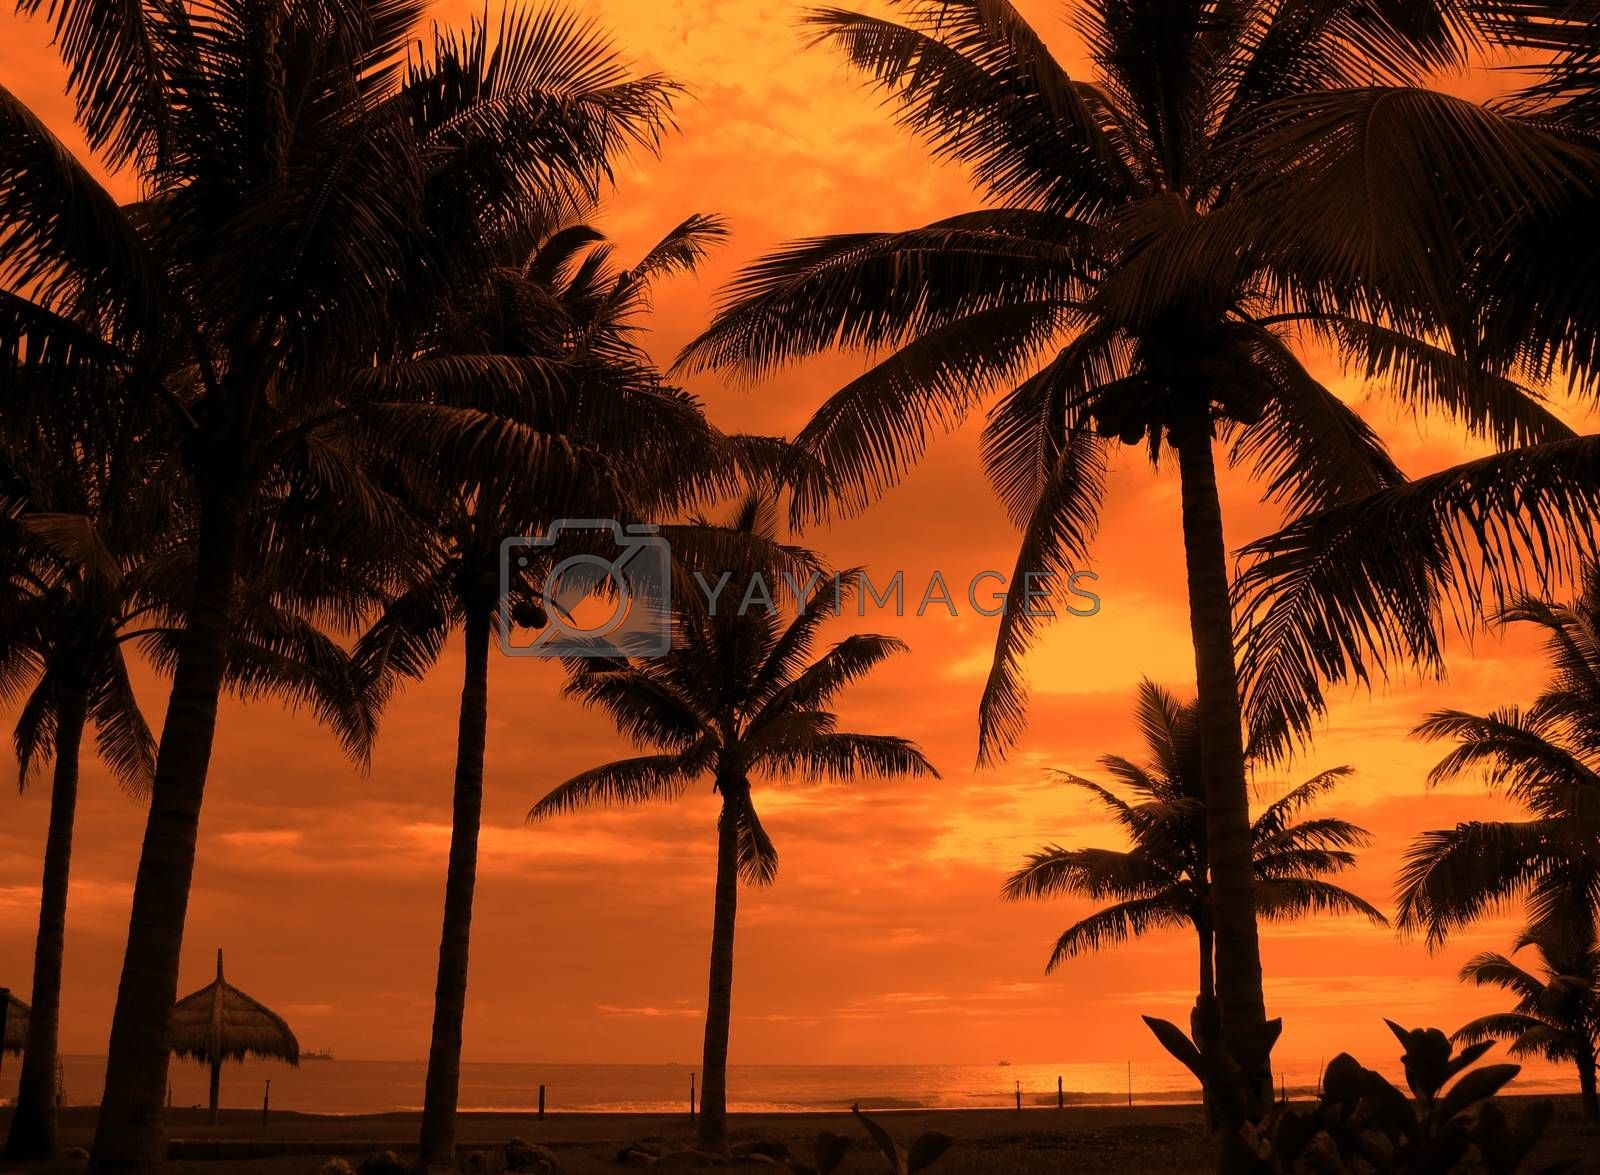 -- palm trees and ocean shore on an afternoon